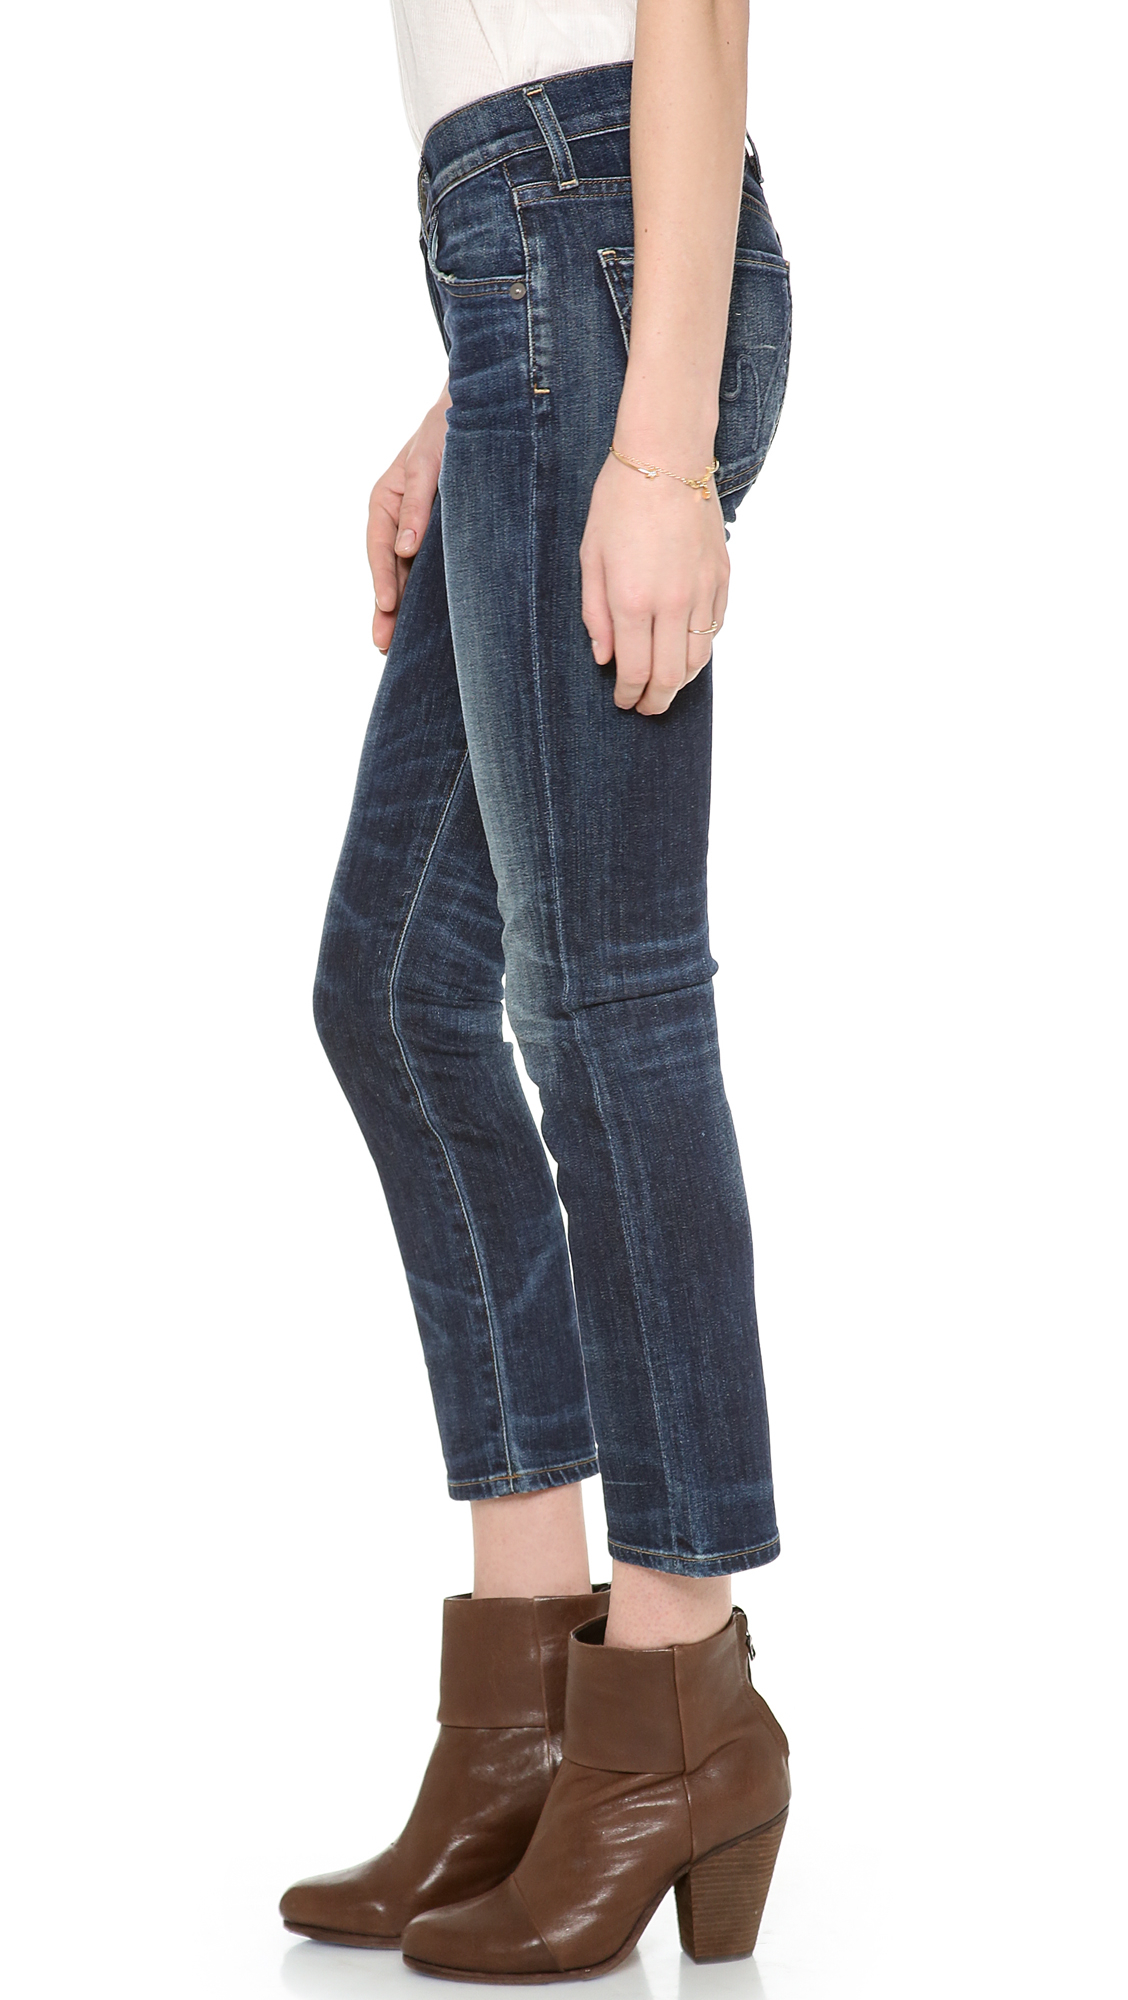 Citizens of humanity Phoebe Cropped Jeans - Patina in Blue (Patina) | Lyst